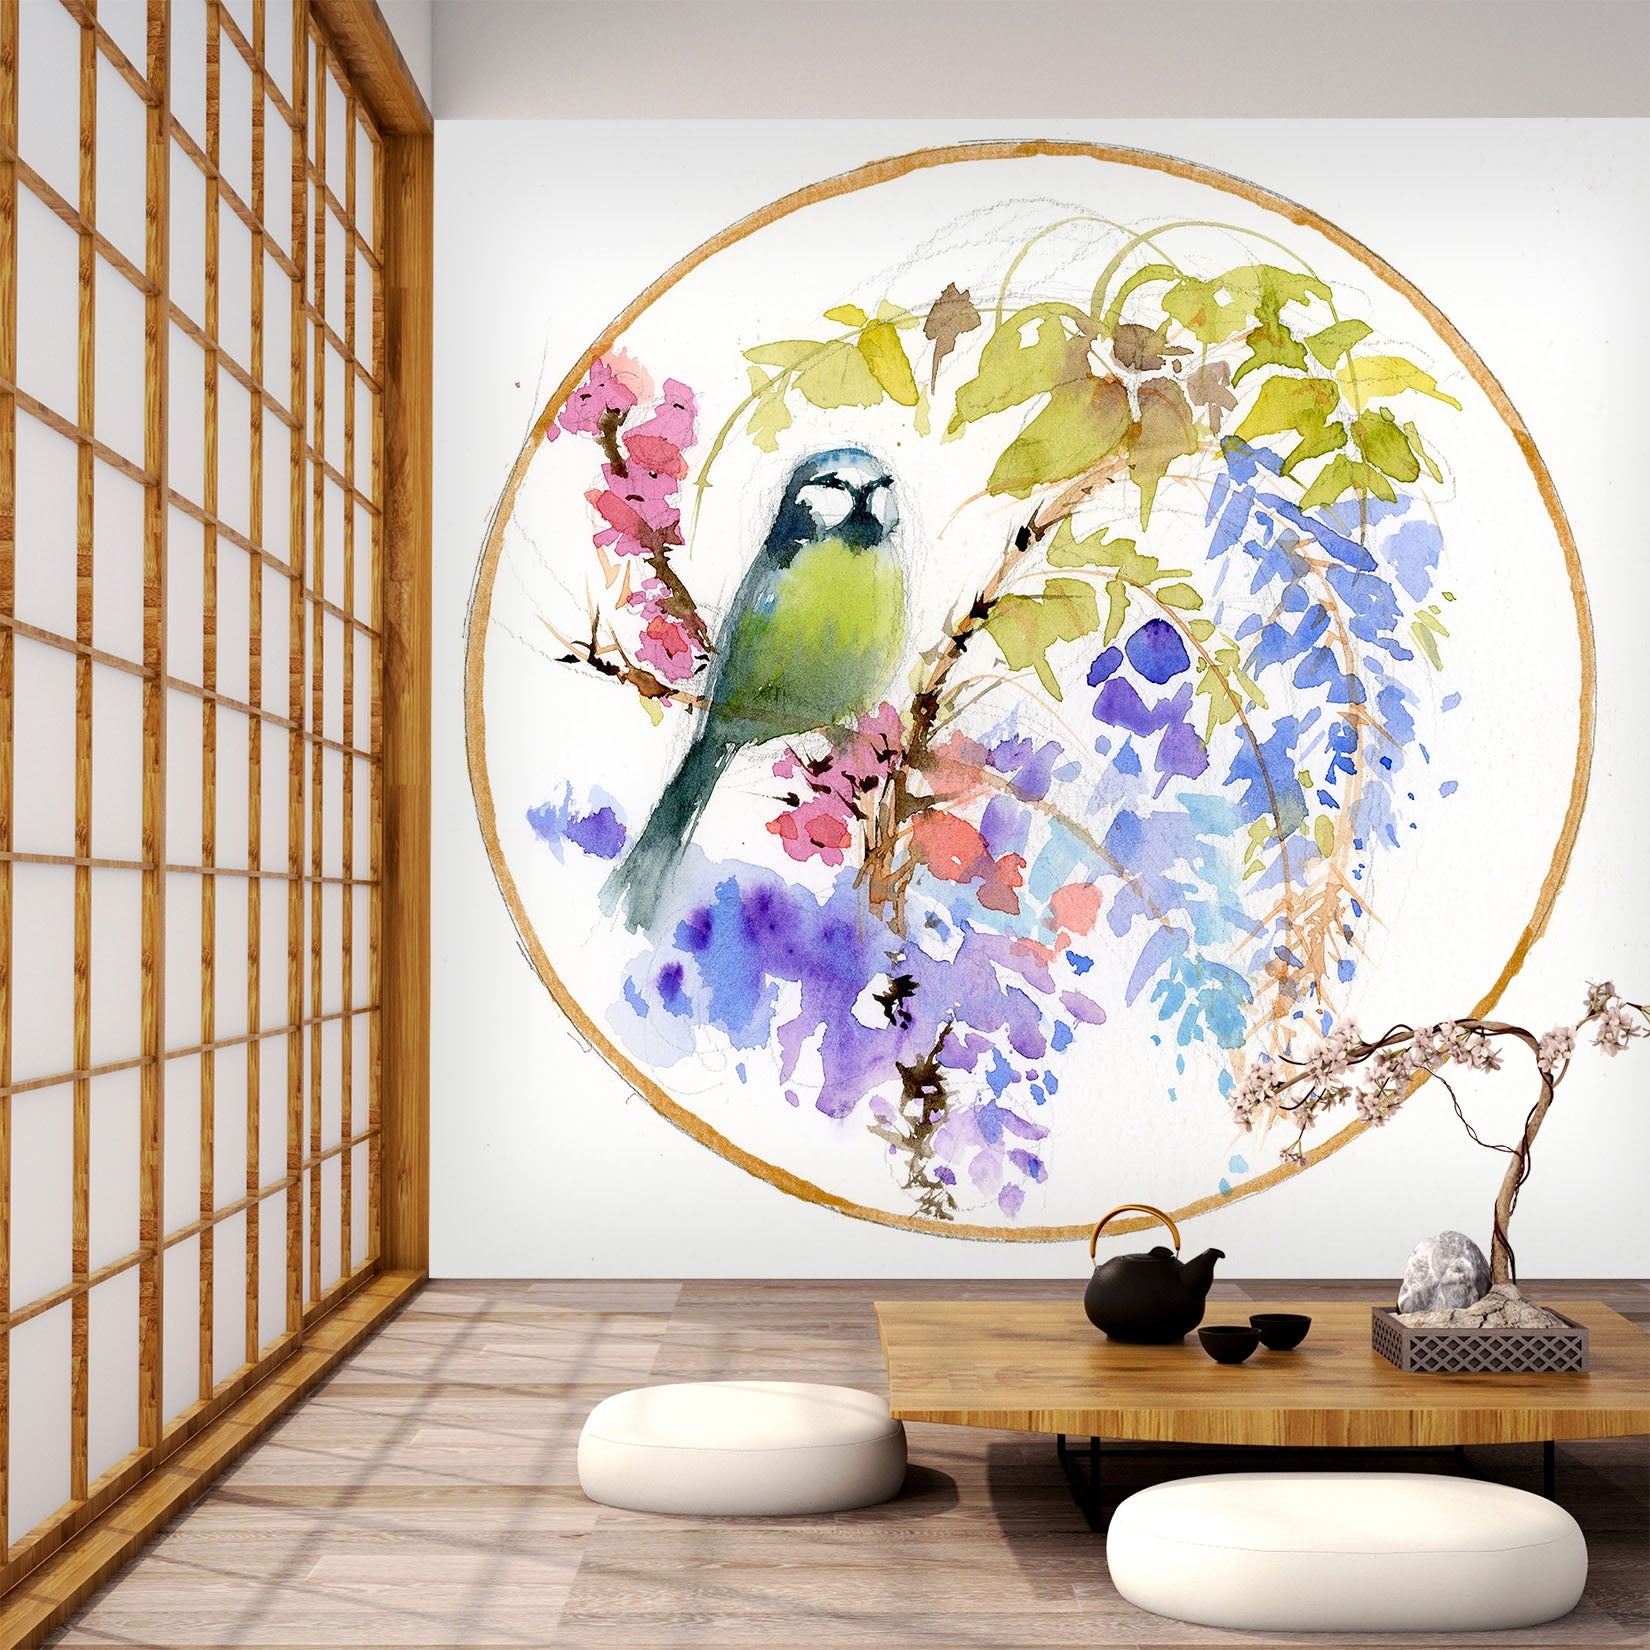 3D Embroidered Bird 1401 Anne Farrall Doyle Wall Mural Wall Murals